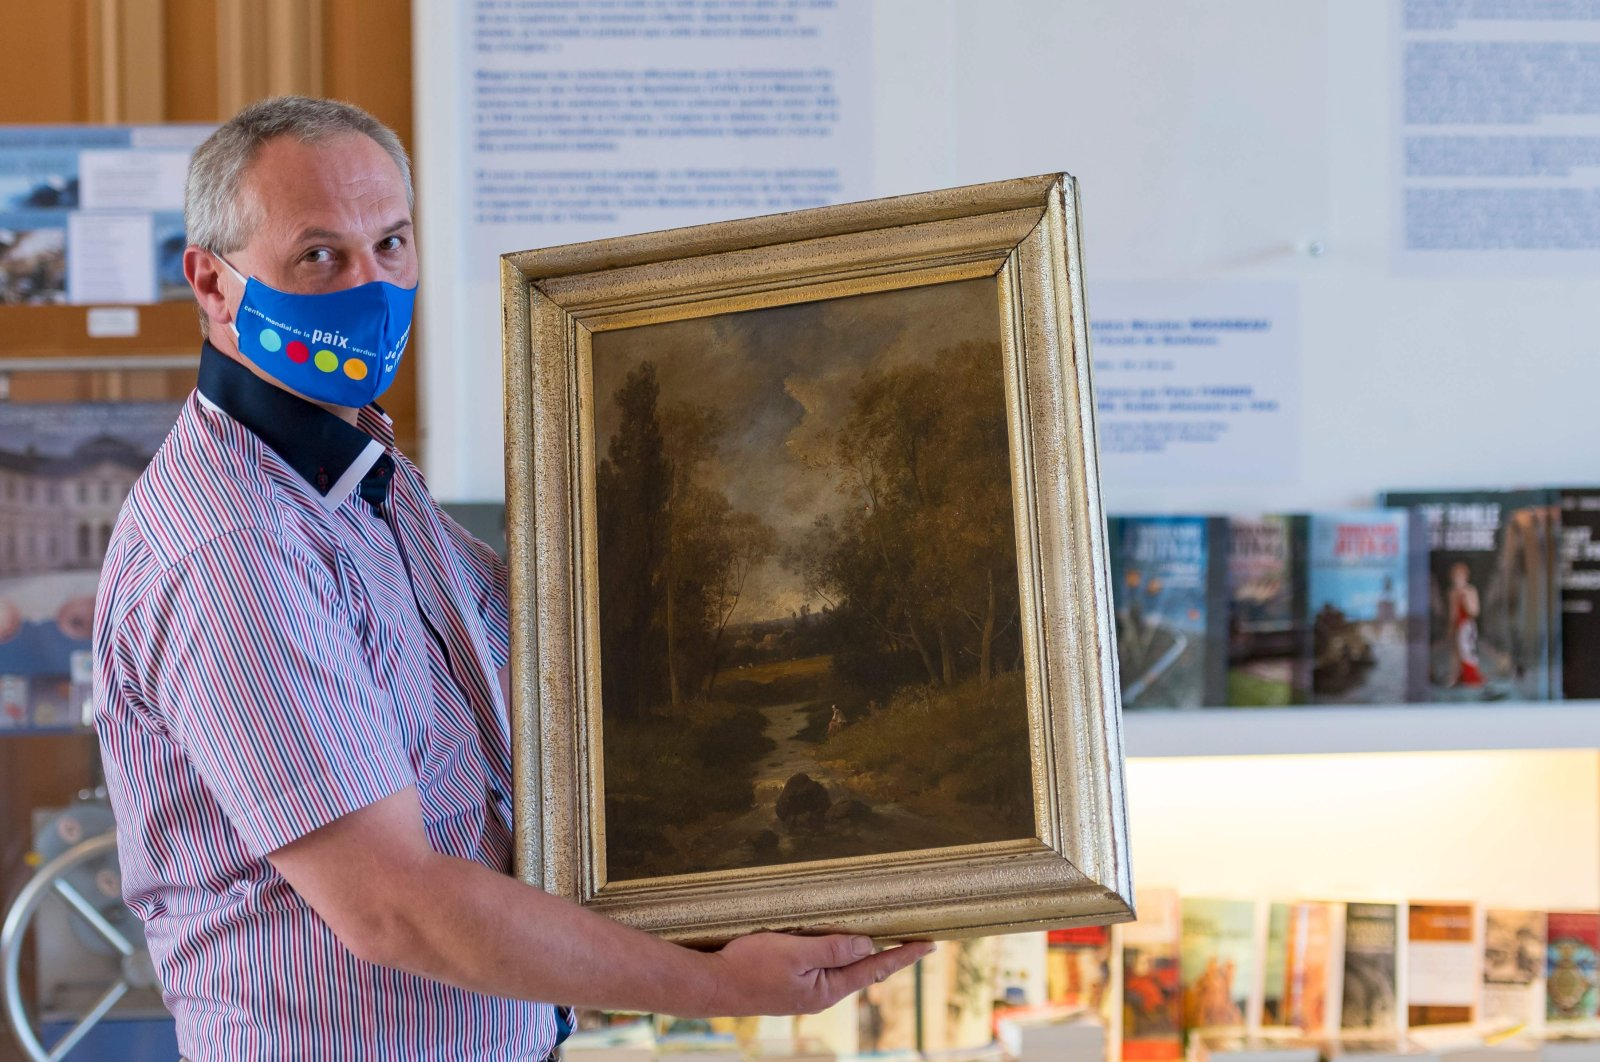 Philippe Hansch, director of the World Peace Center, presents the painting by the French painter Nicolas Rousseau in Verdun, France on Aug. 17, 2020. (AFP Photo)